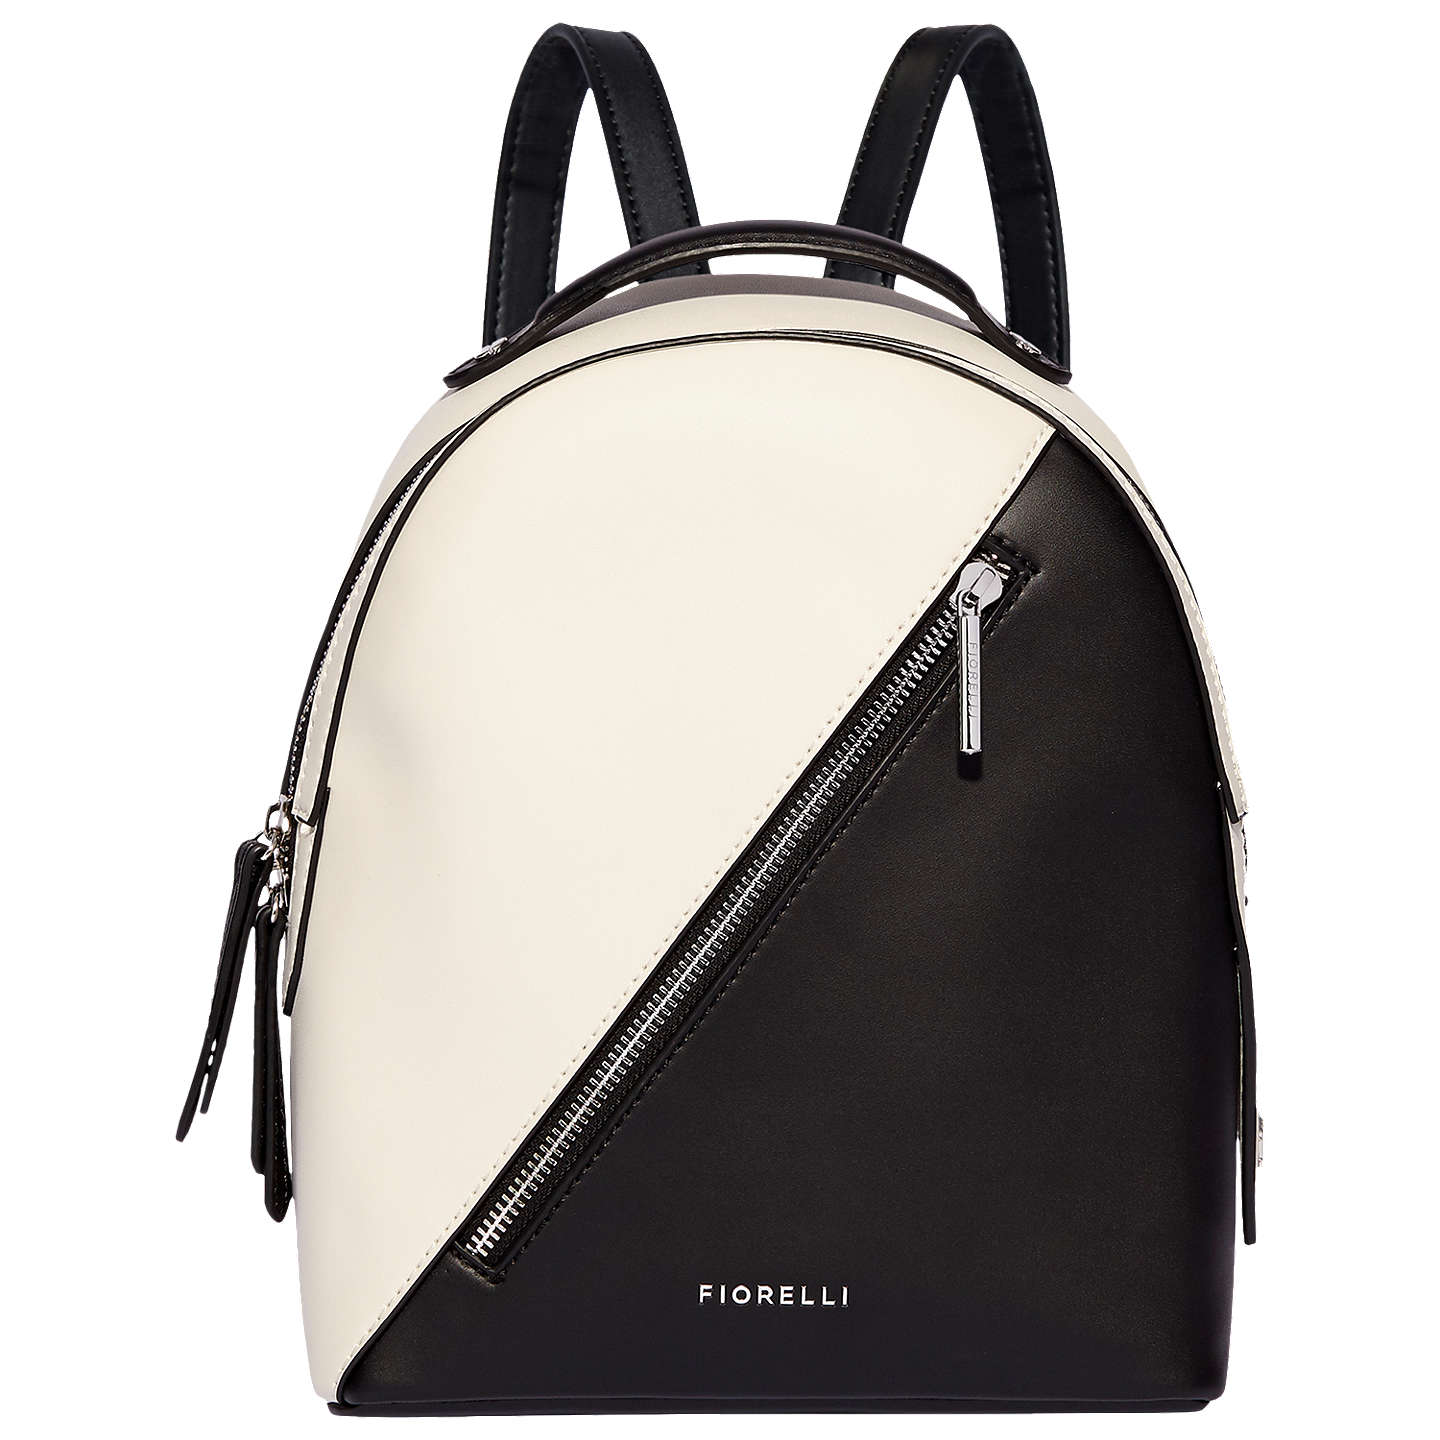 Fiorelli Anouk Small Backpack, Black/White by Fiorelli